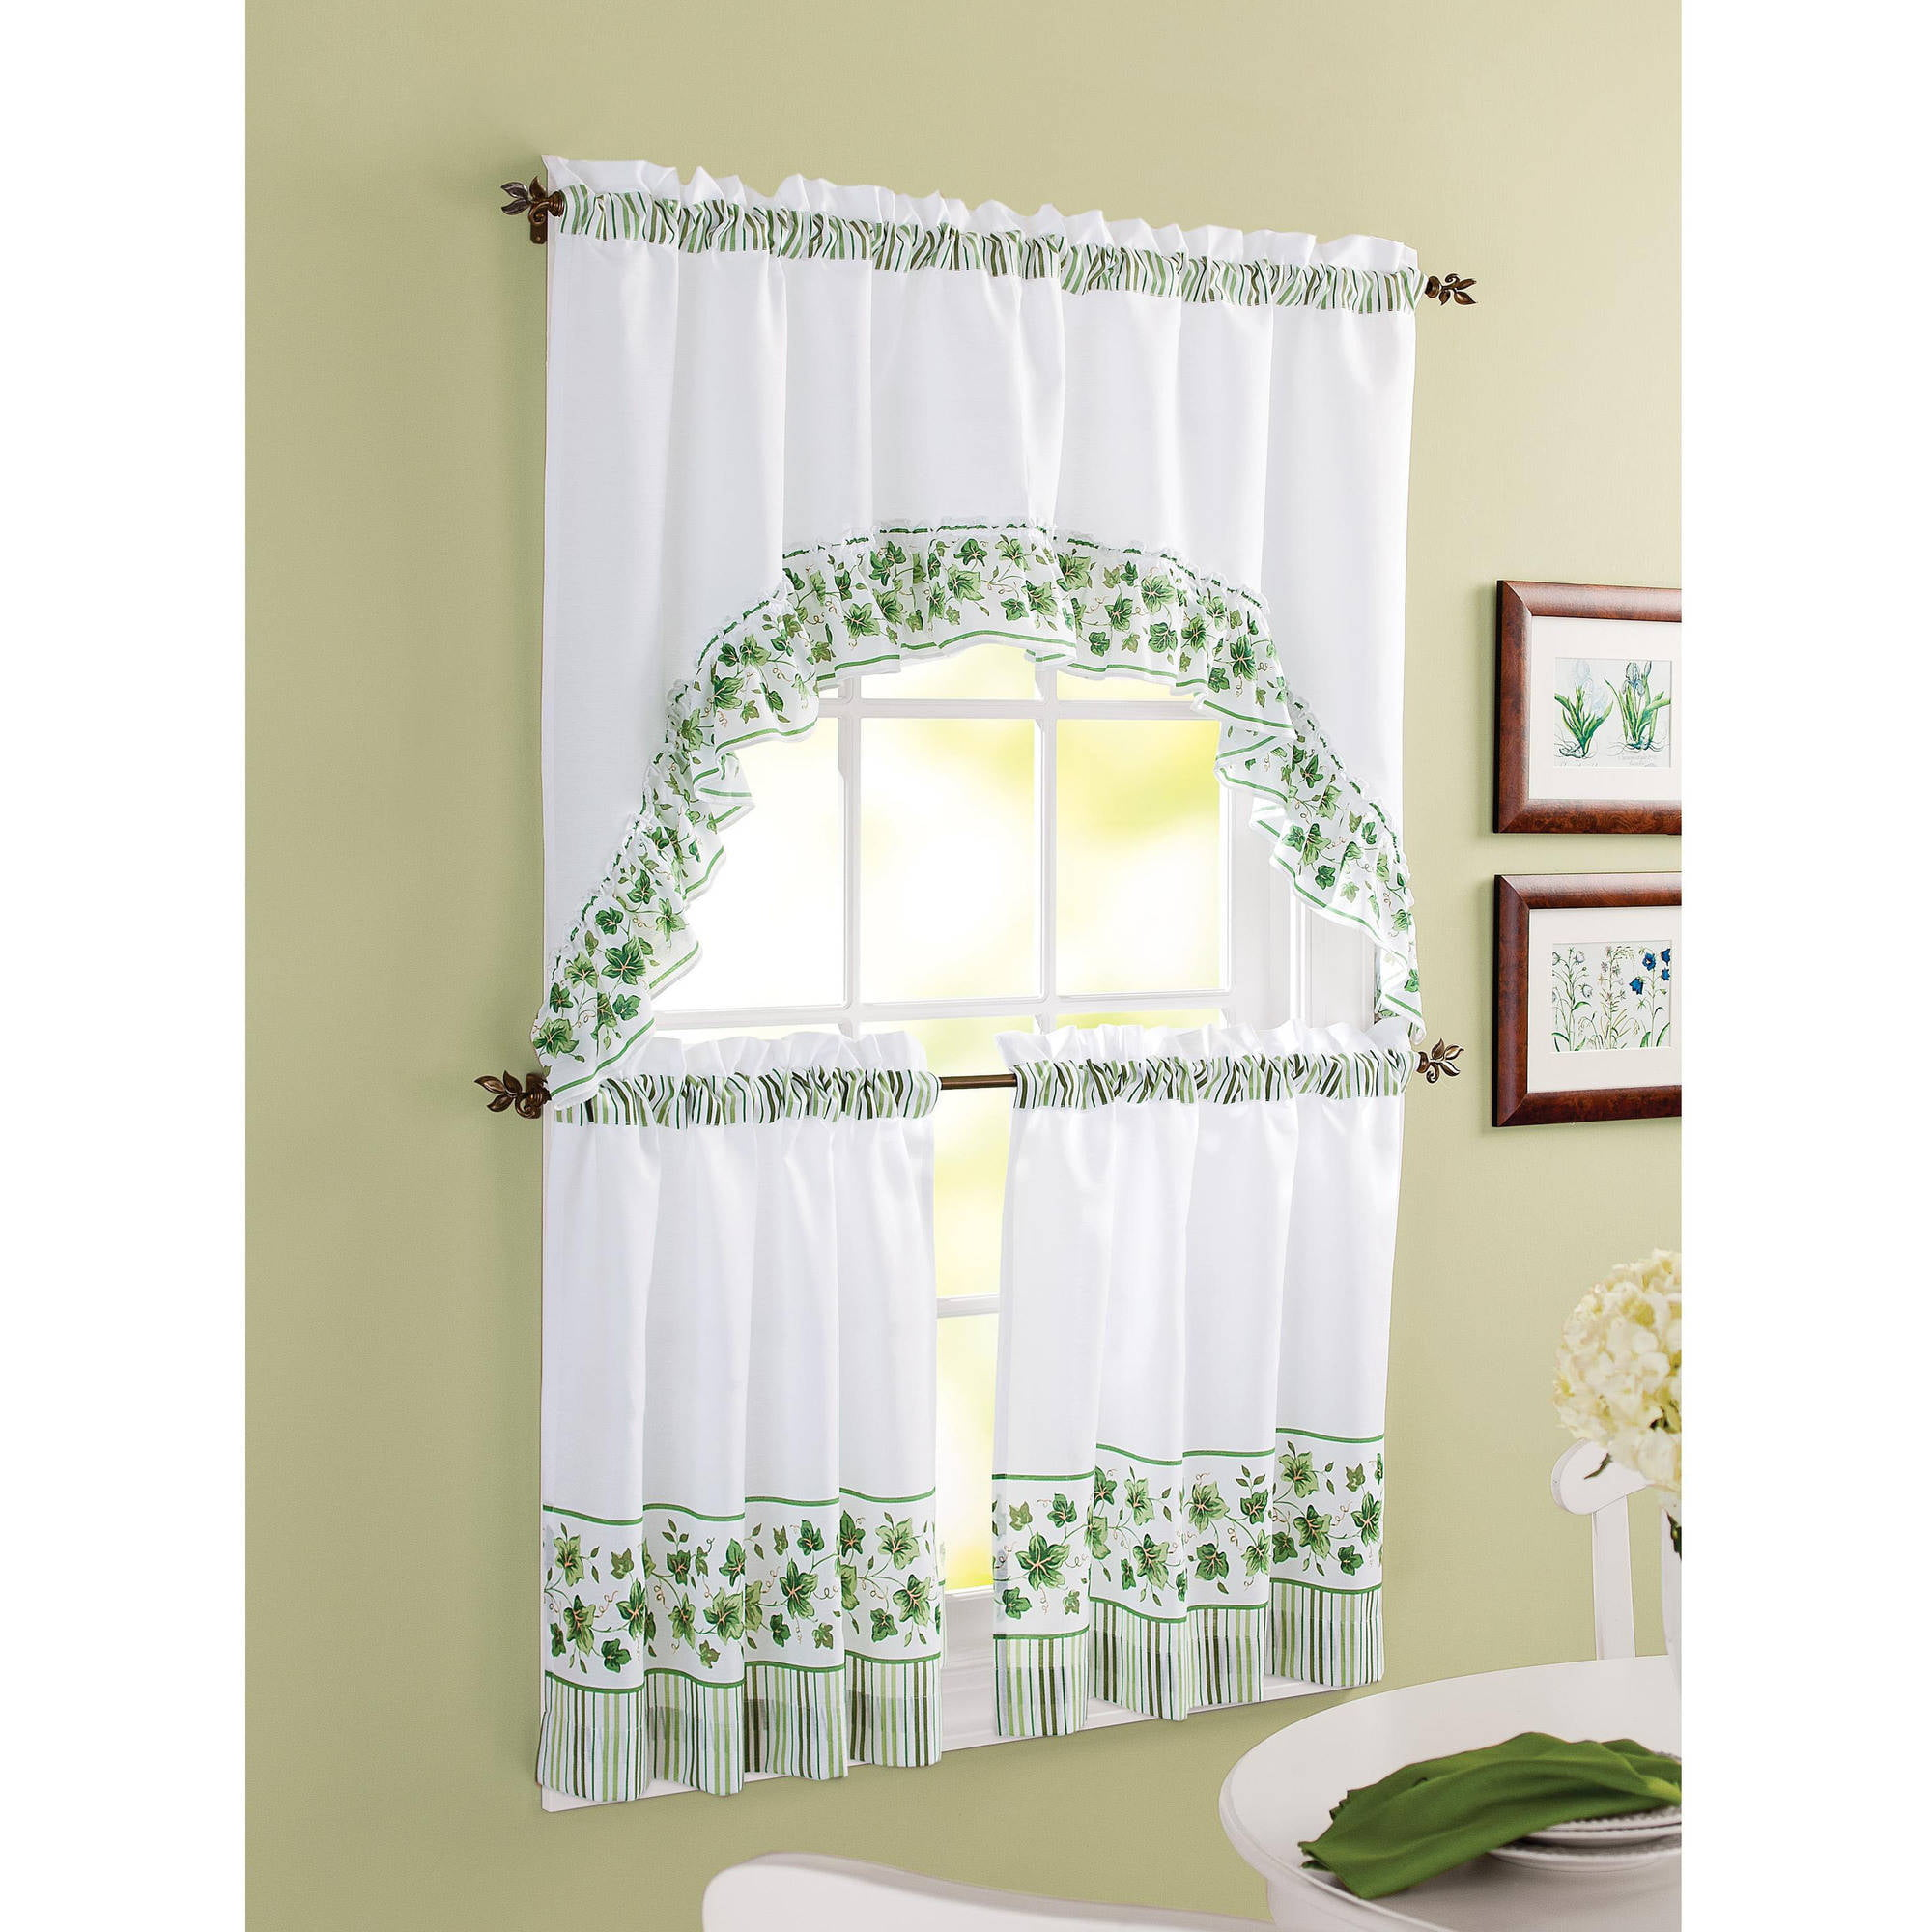 Chf you morning rooster tier curtain panel set Better homes and gardens valances for small windows